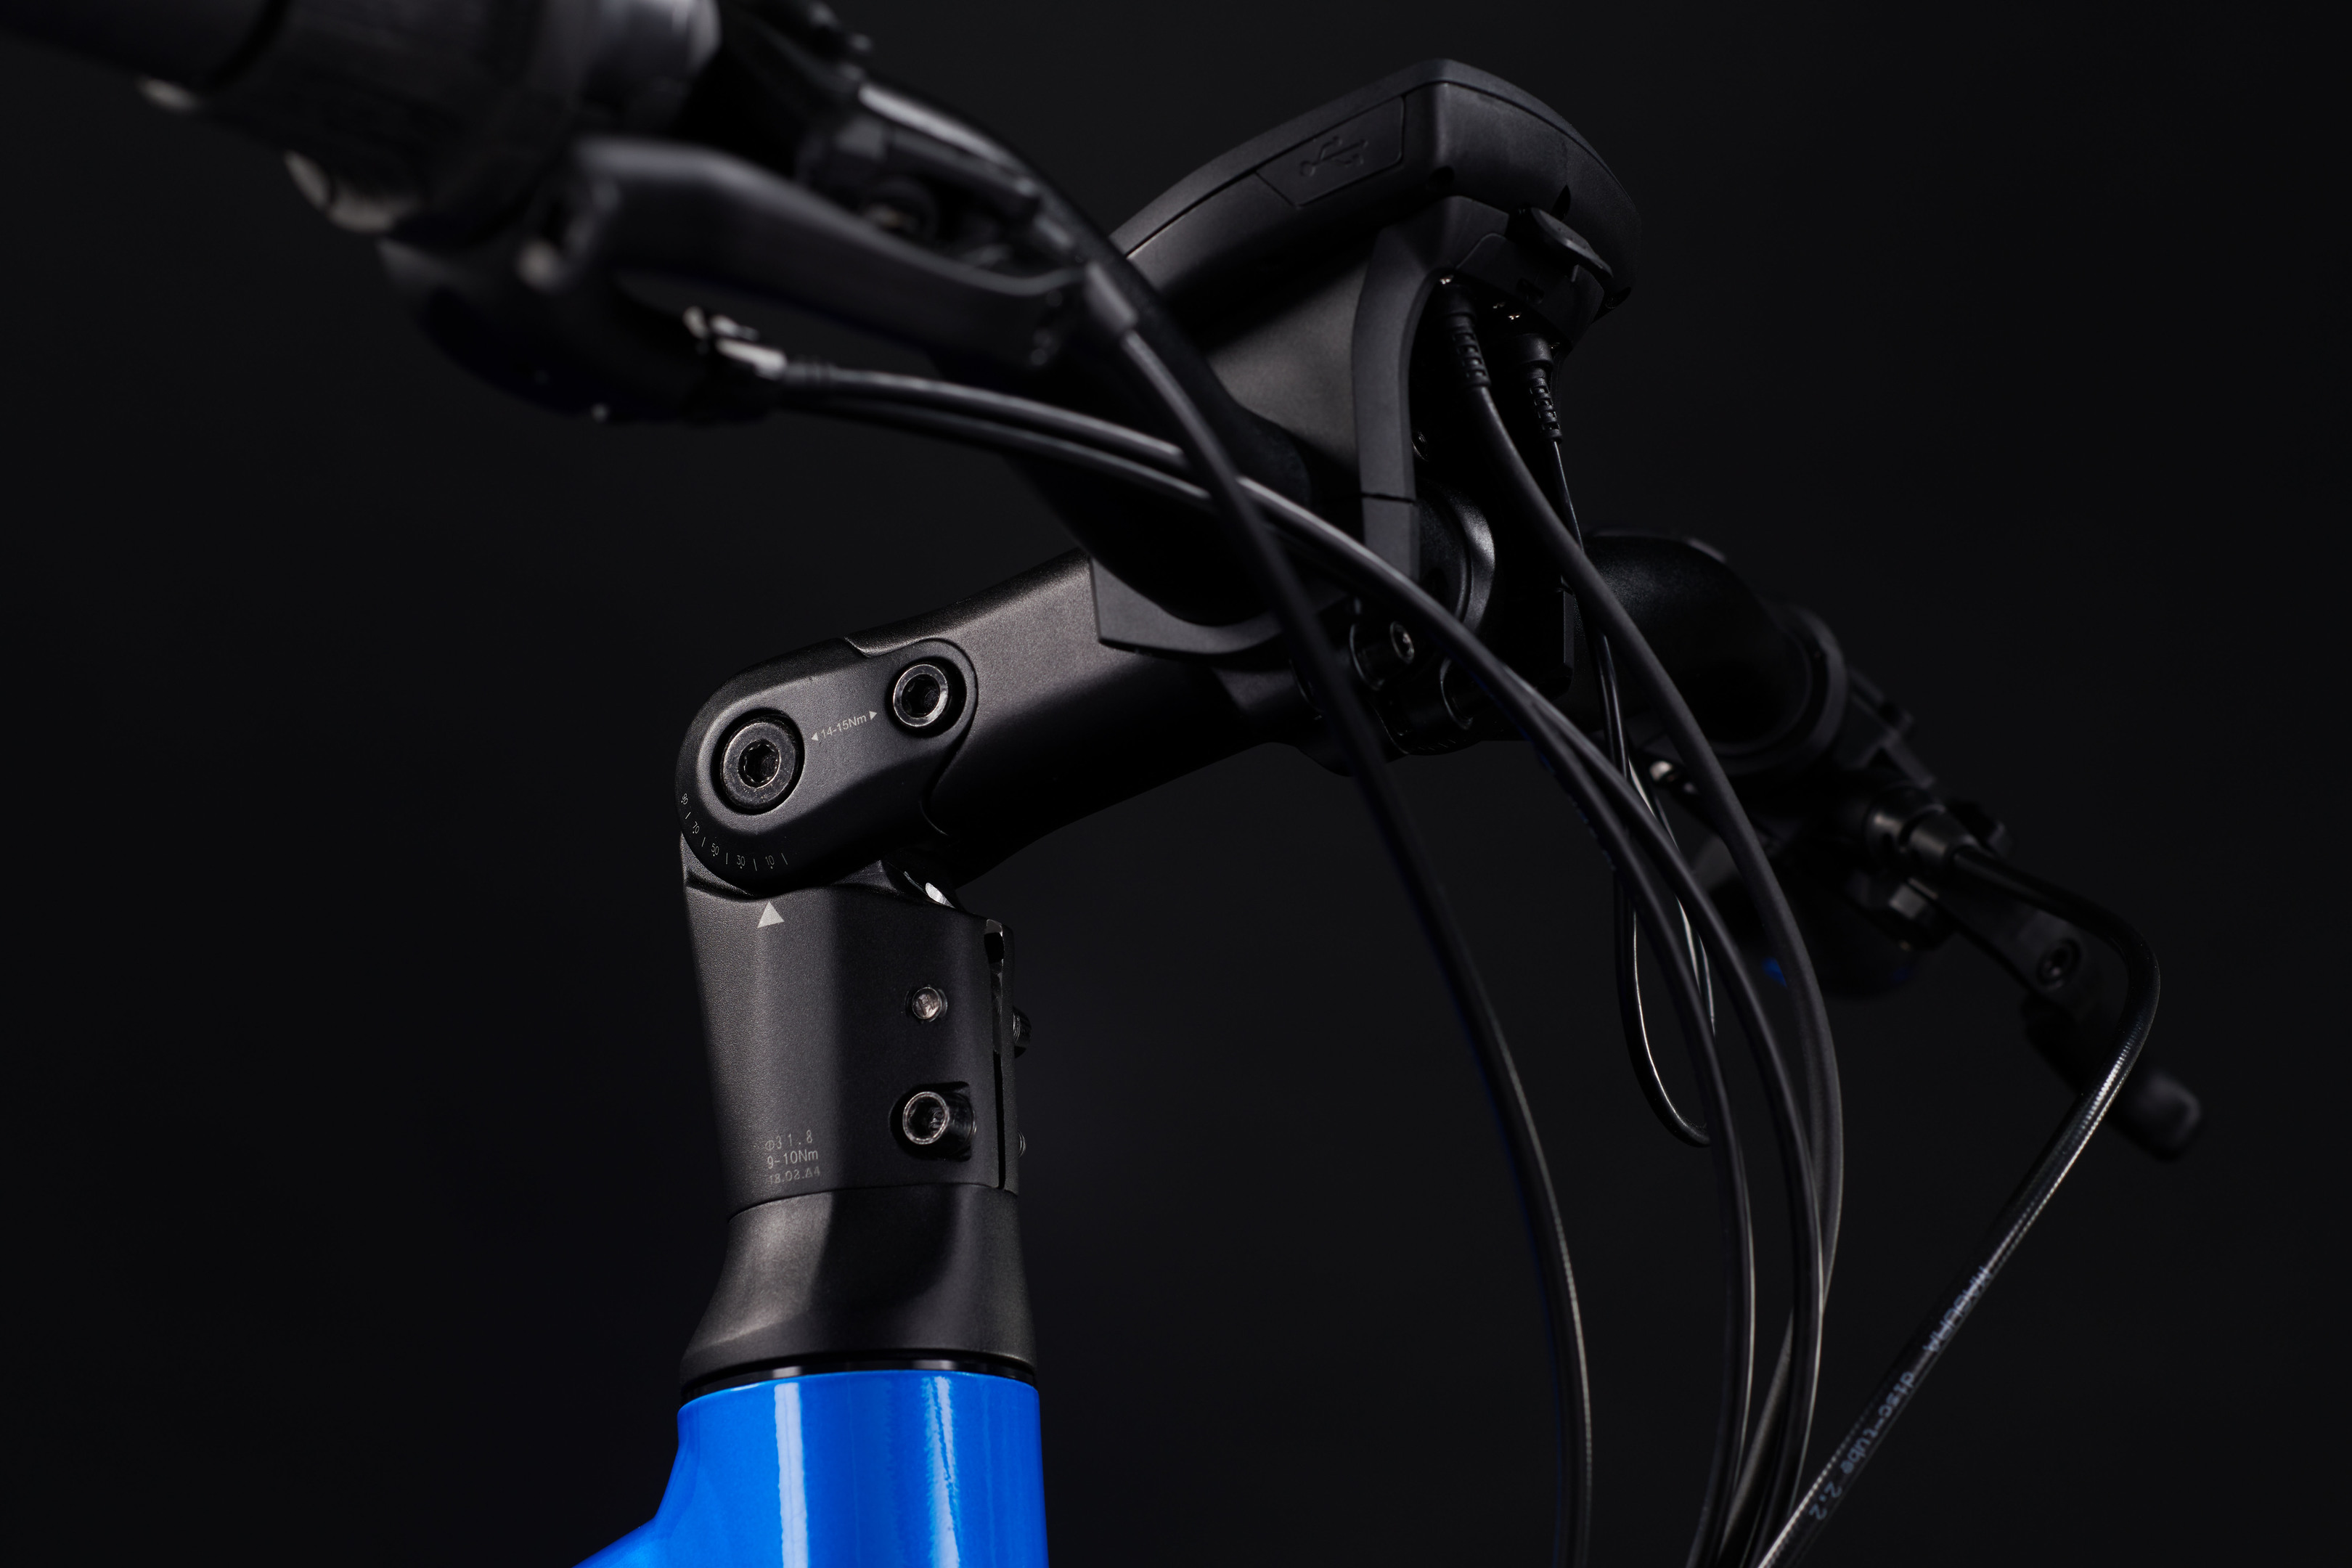 Adjustable Satori stem